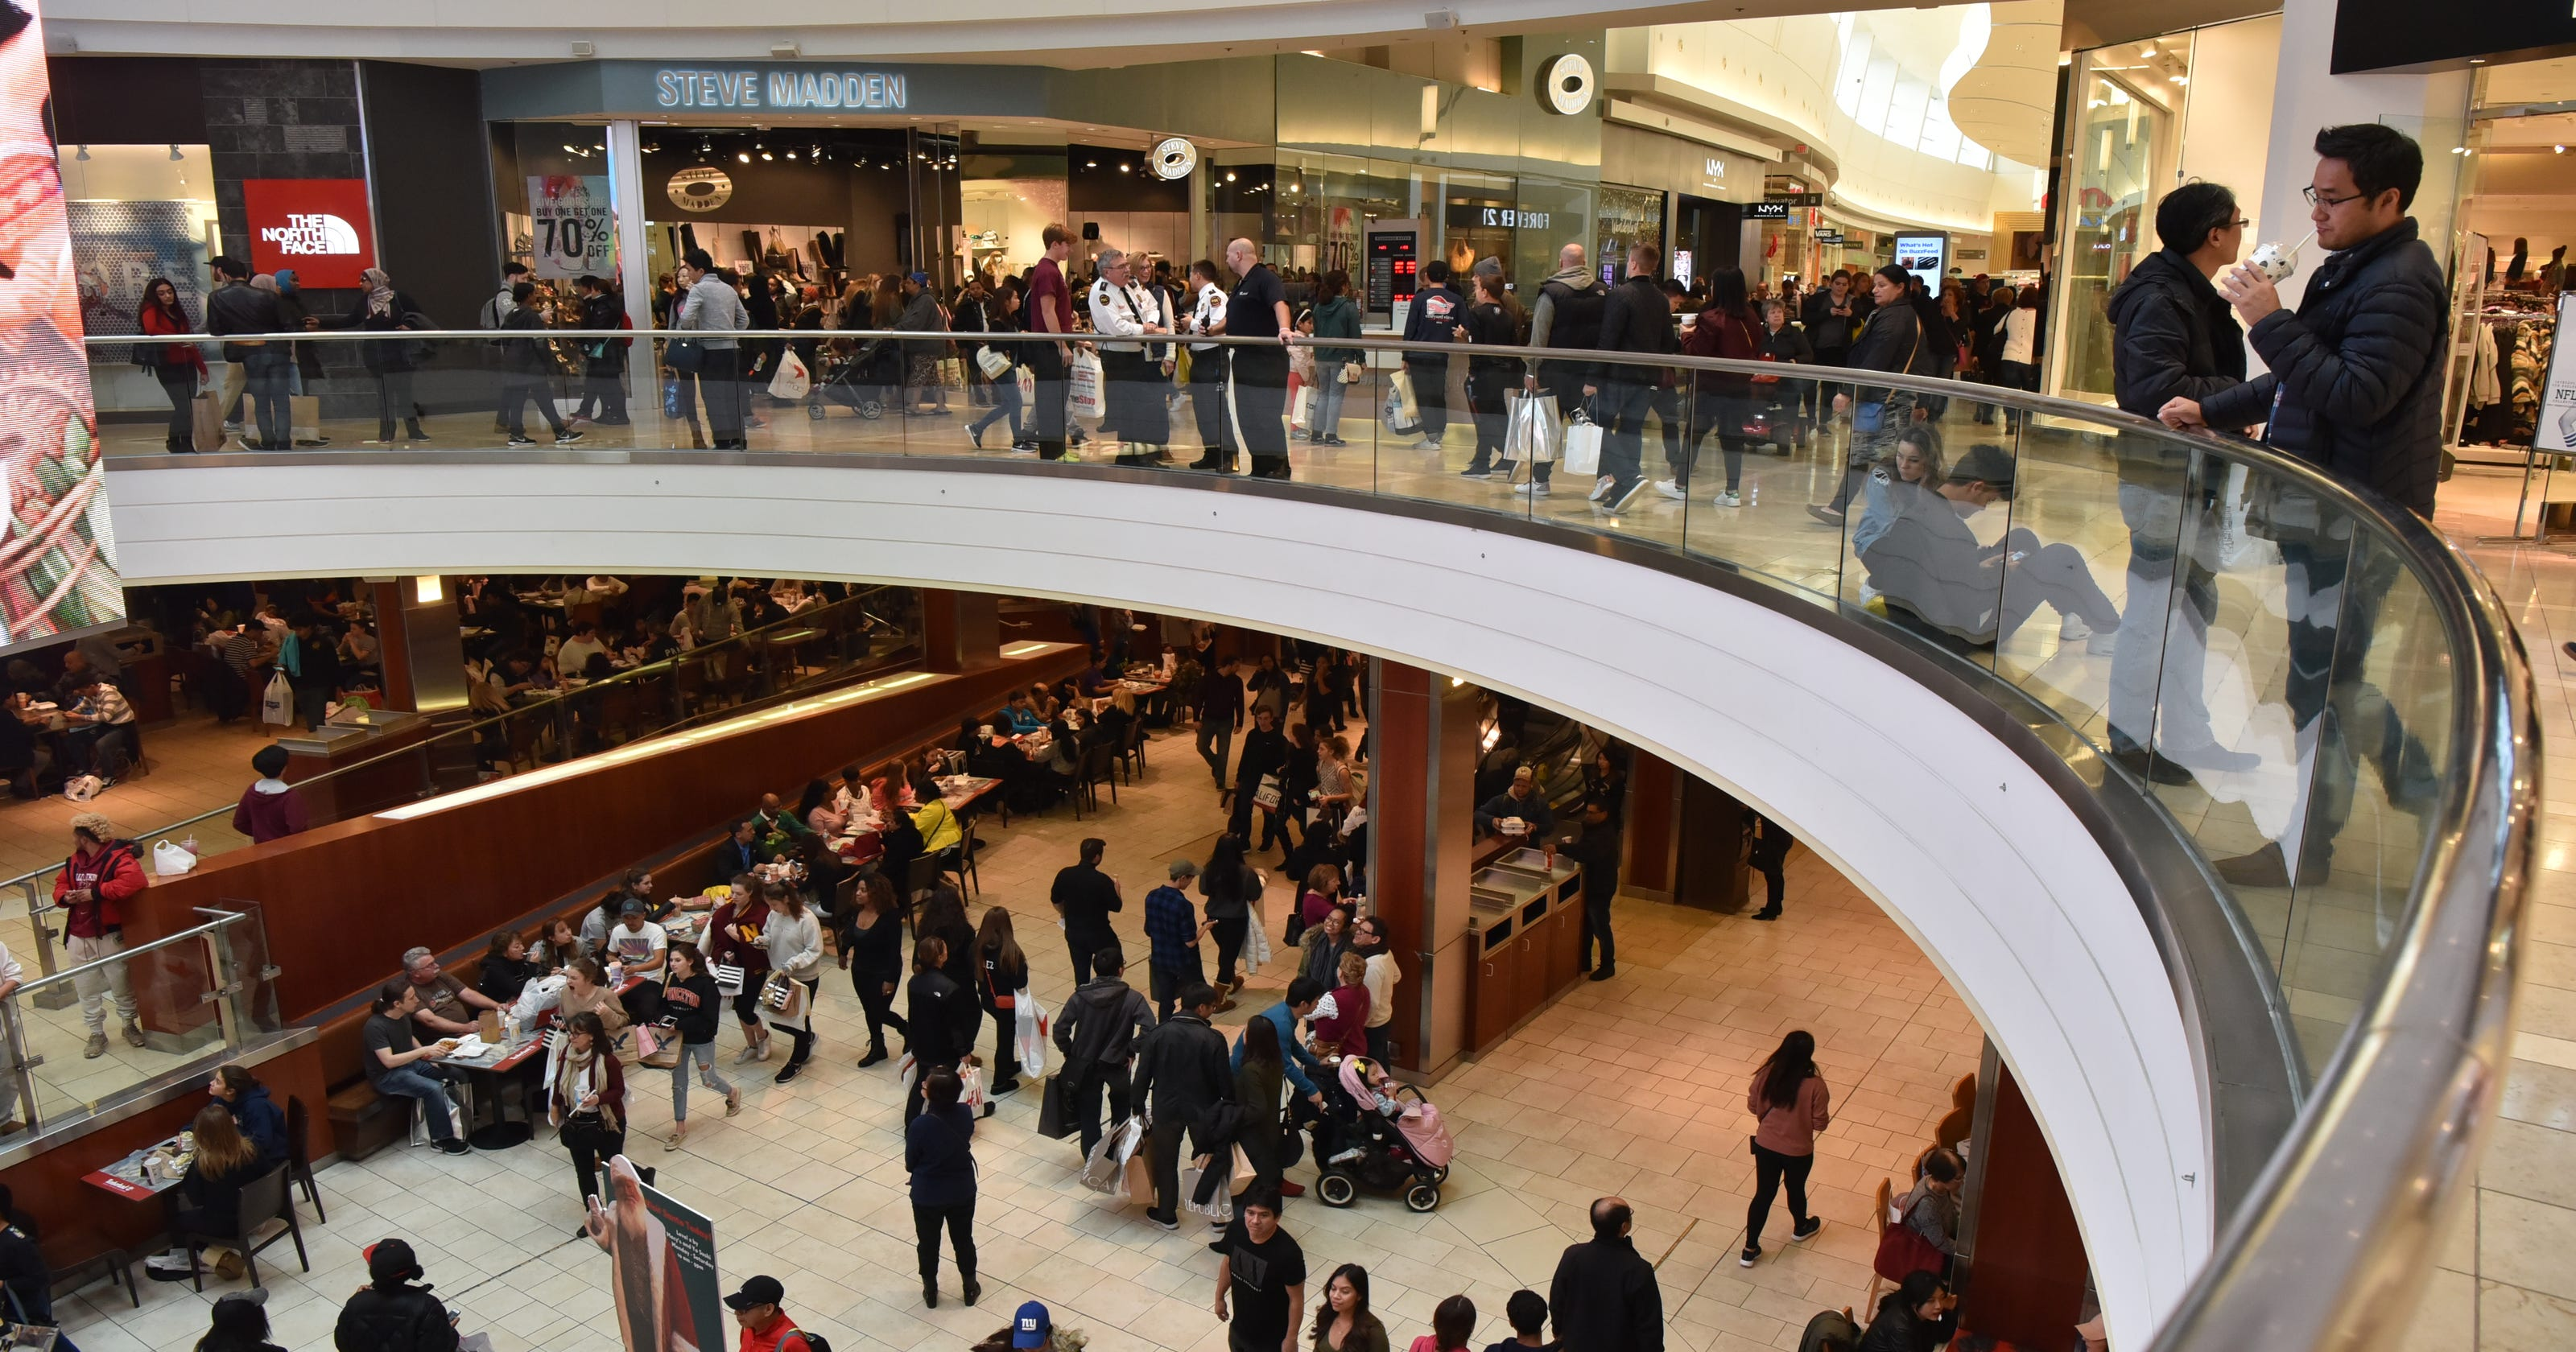 Where to eat at the mall during Black Friday